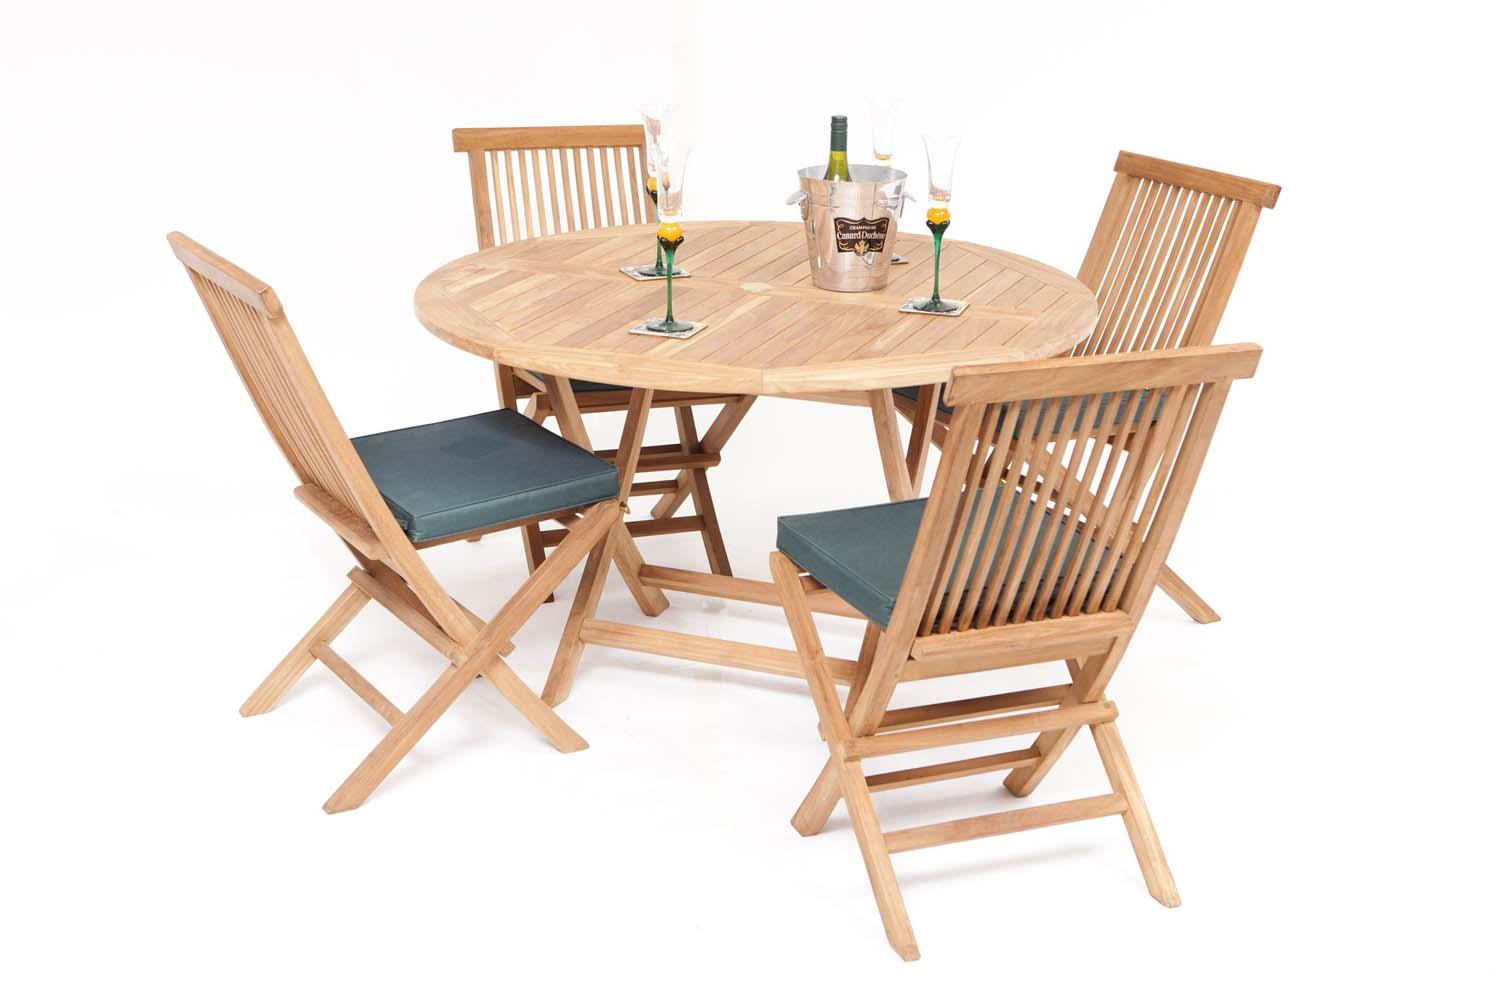 https://www.firstfurniture.co.uk/pub/media/catalog/product/2/5/2500x1666_1468231595ht30salernoroundfolding31.jpg